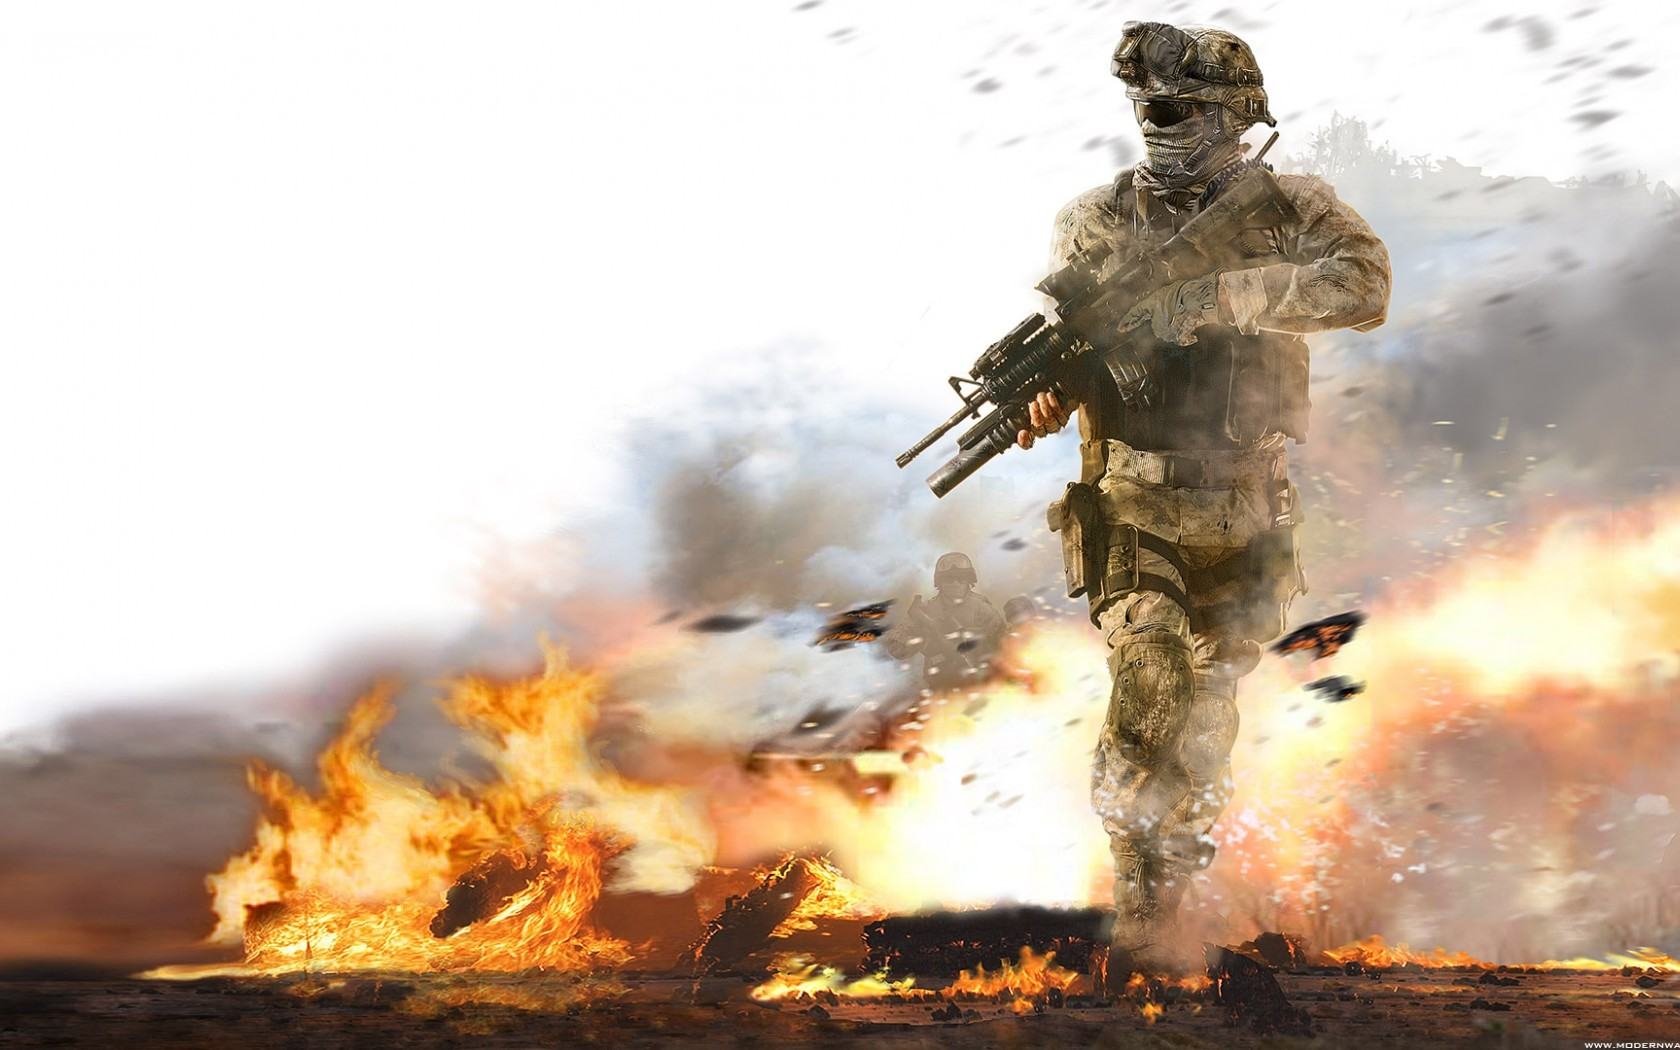 War fire smoke call HD Wallpaper